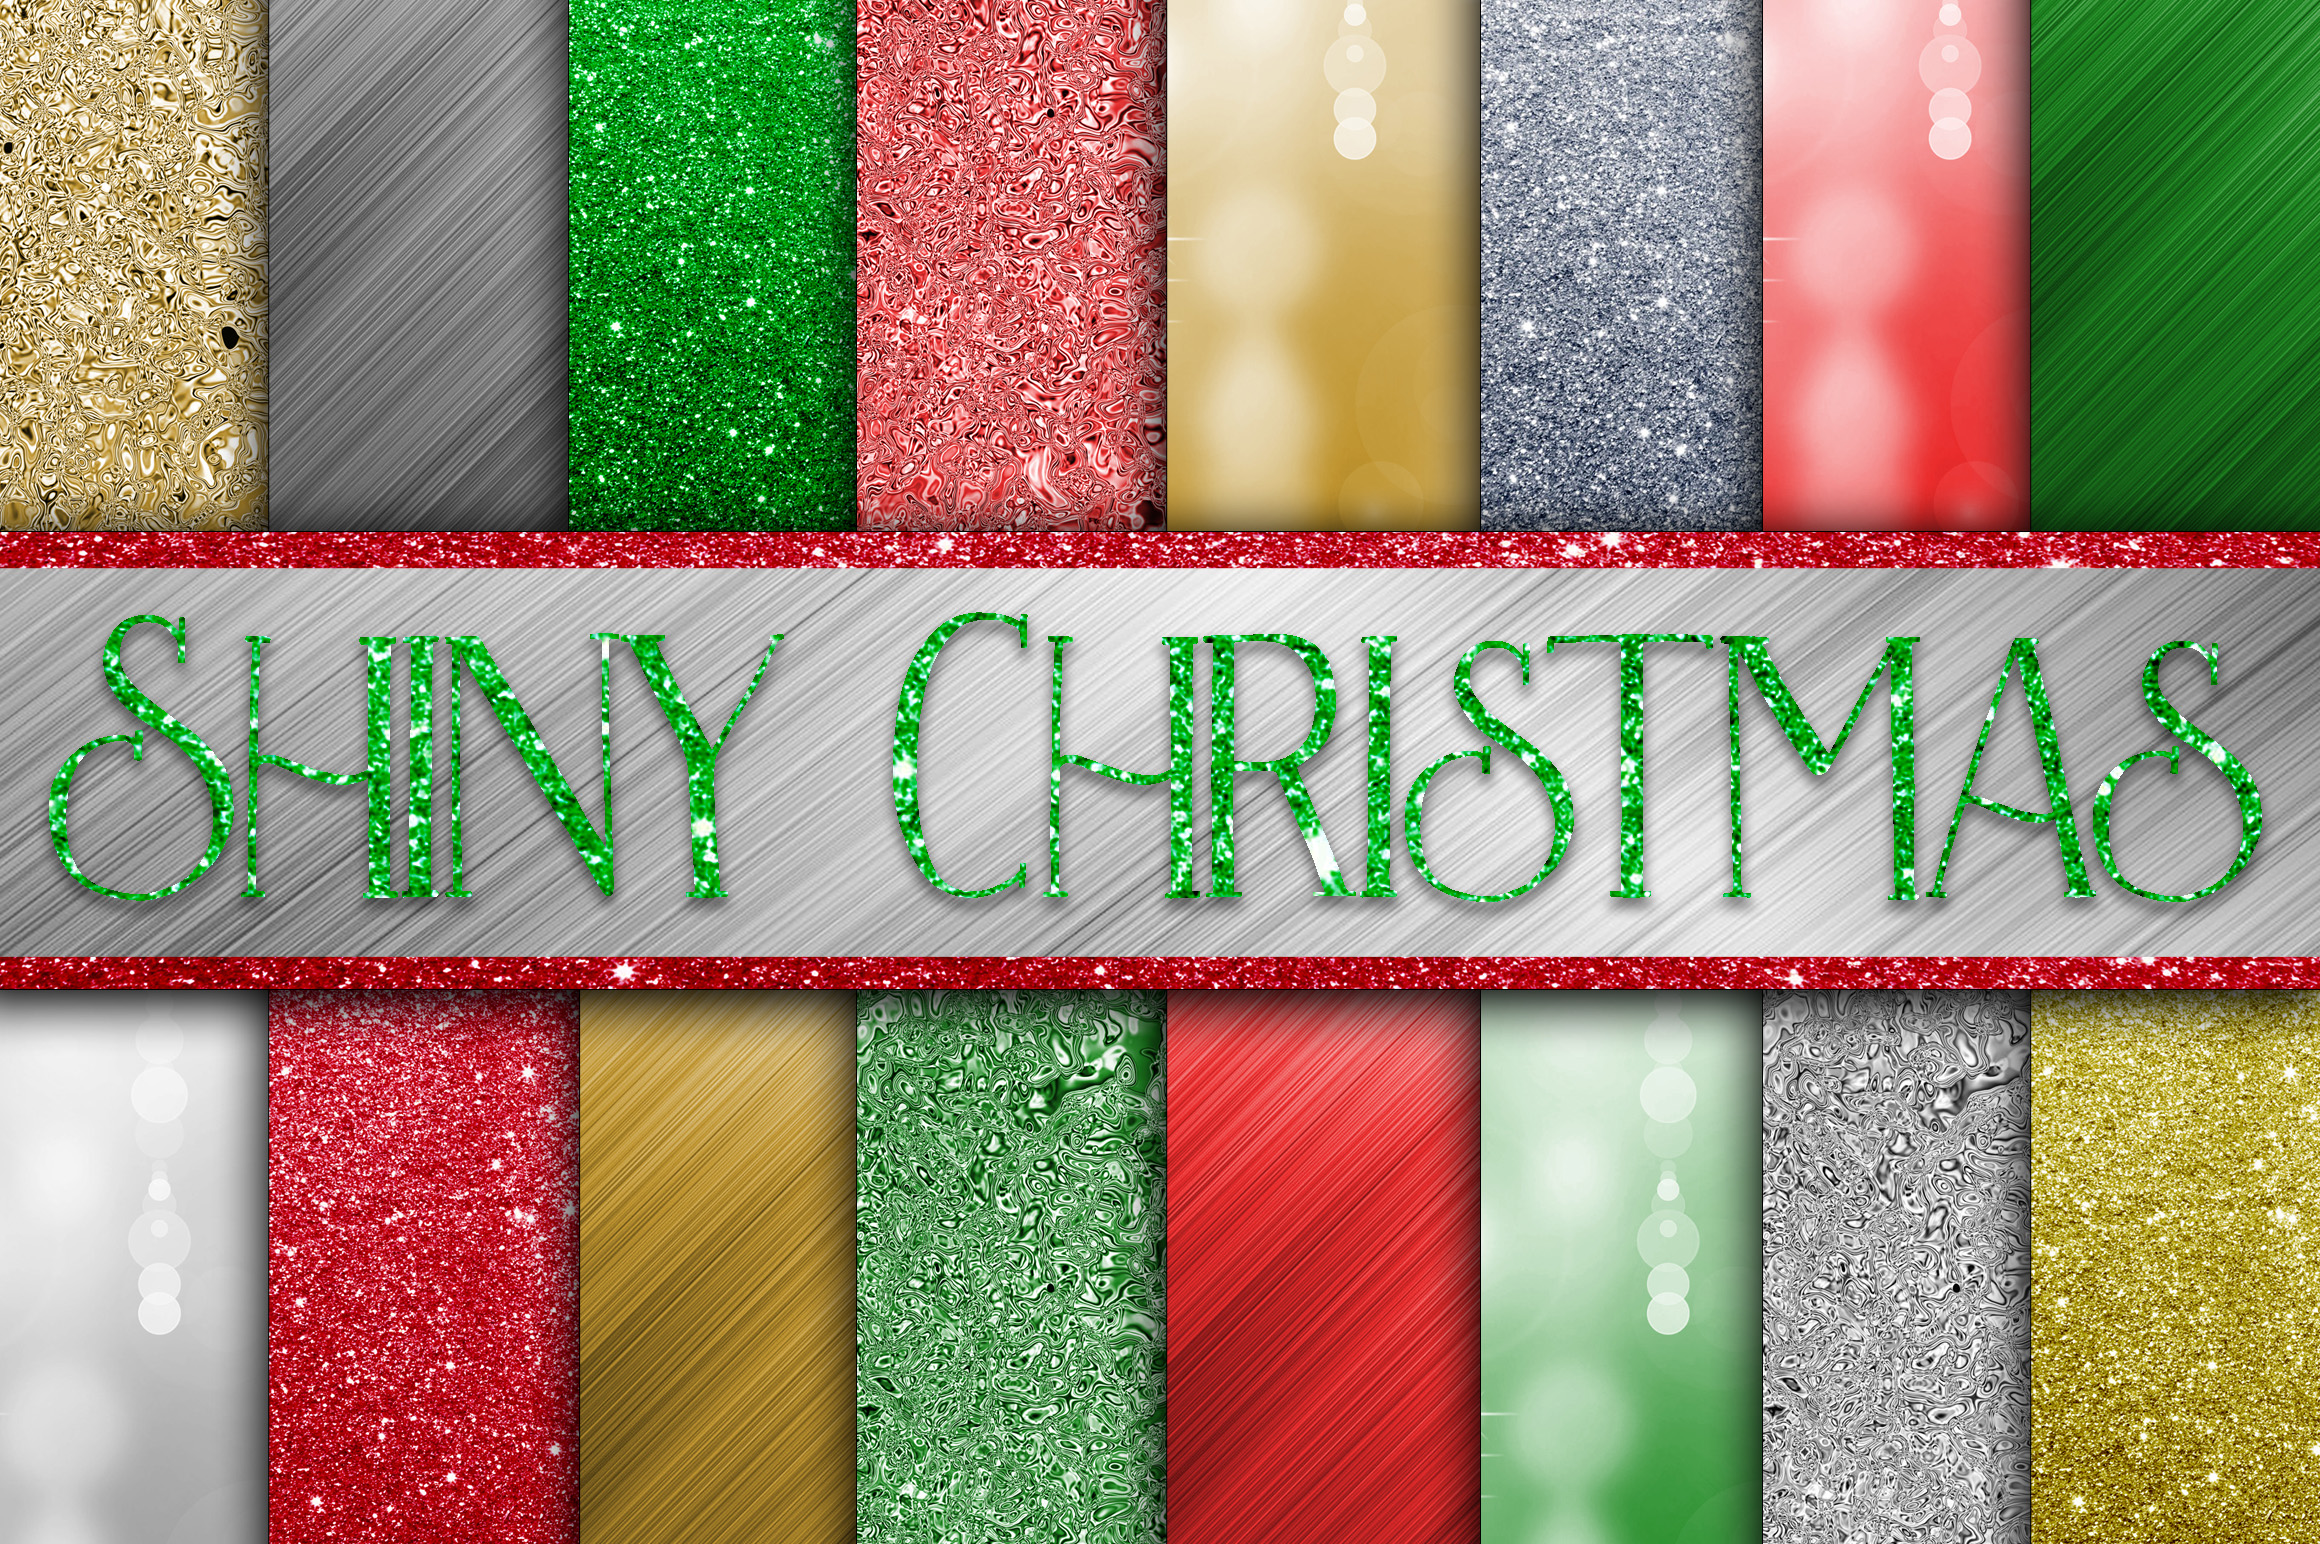 Shiny Christmas Digital Paper Graphic Backgrounds By oldmarketdesigns